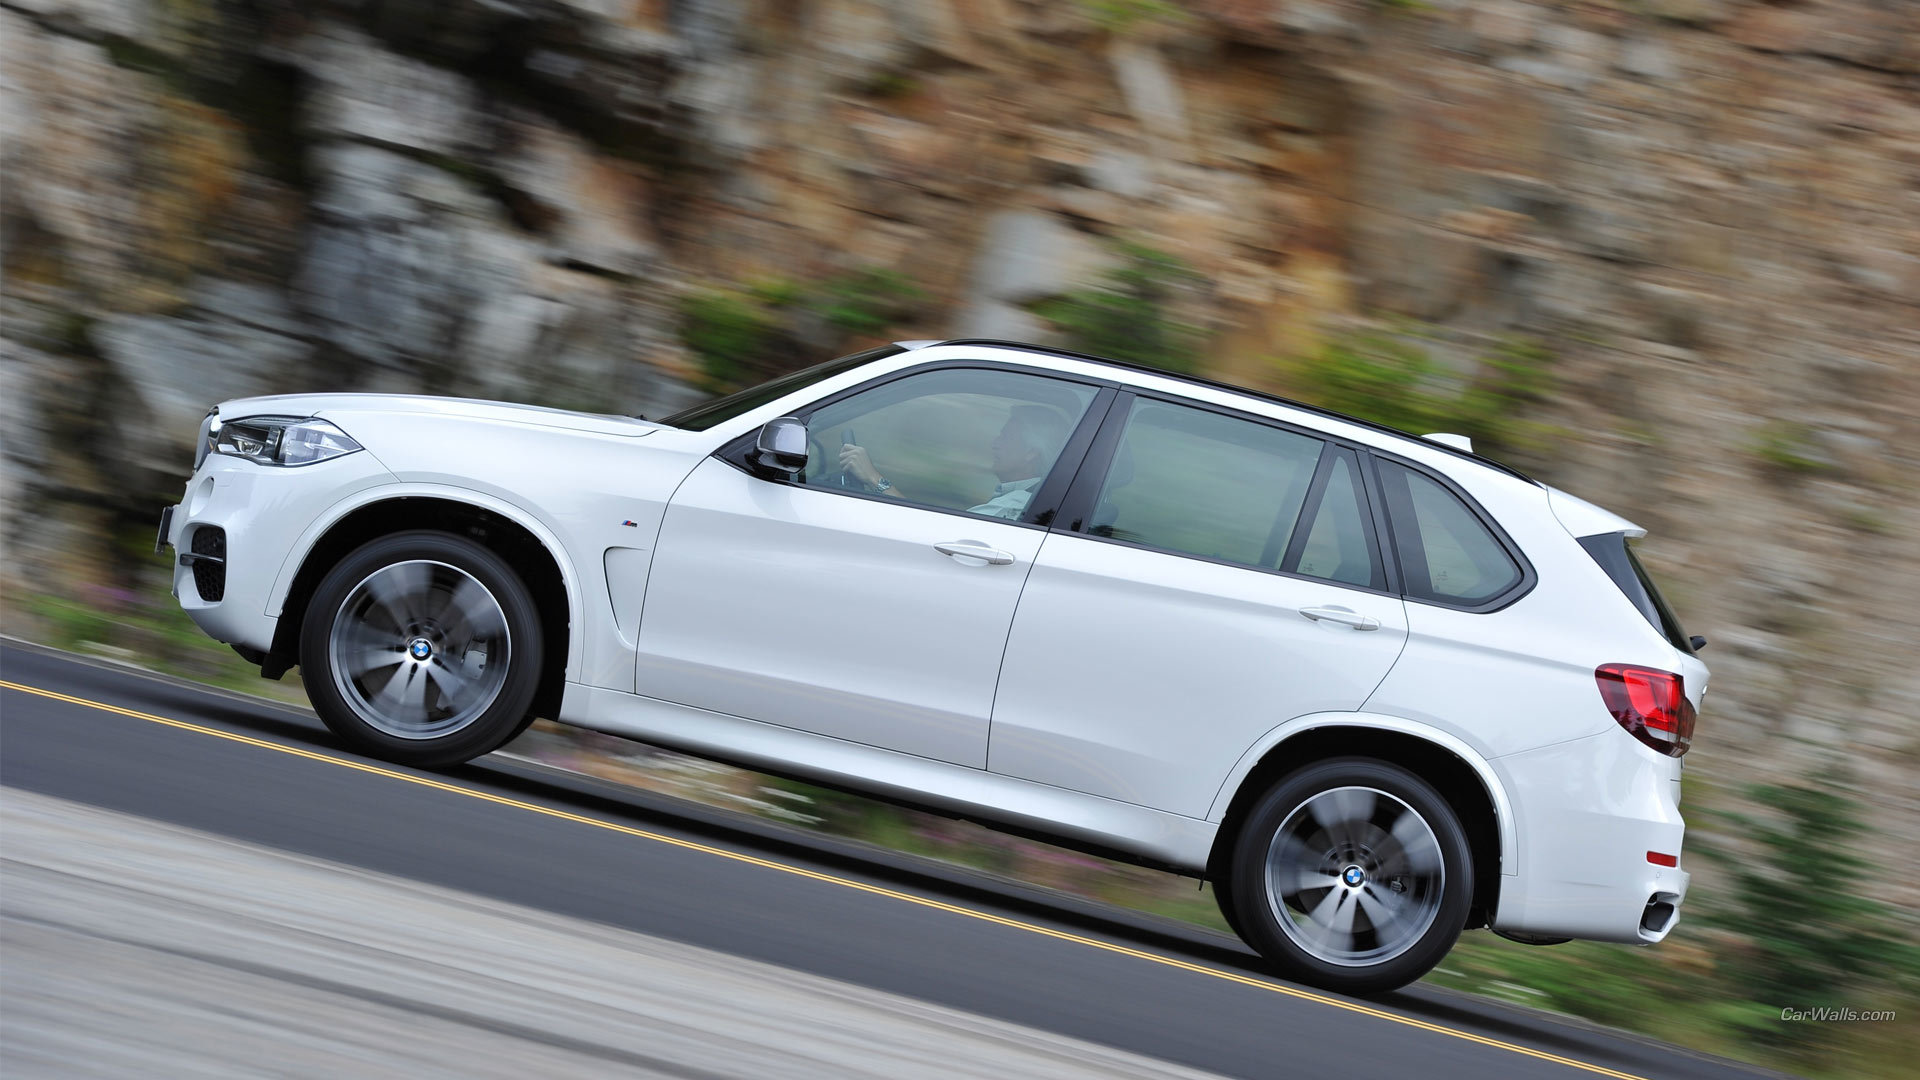 Bmw x5 wallpapers 1920x1080 full hd 1080p desktop backgrounds best bmw x5 wallpaper id163197 for high resolution 1080p pc voltagebd Gallery